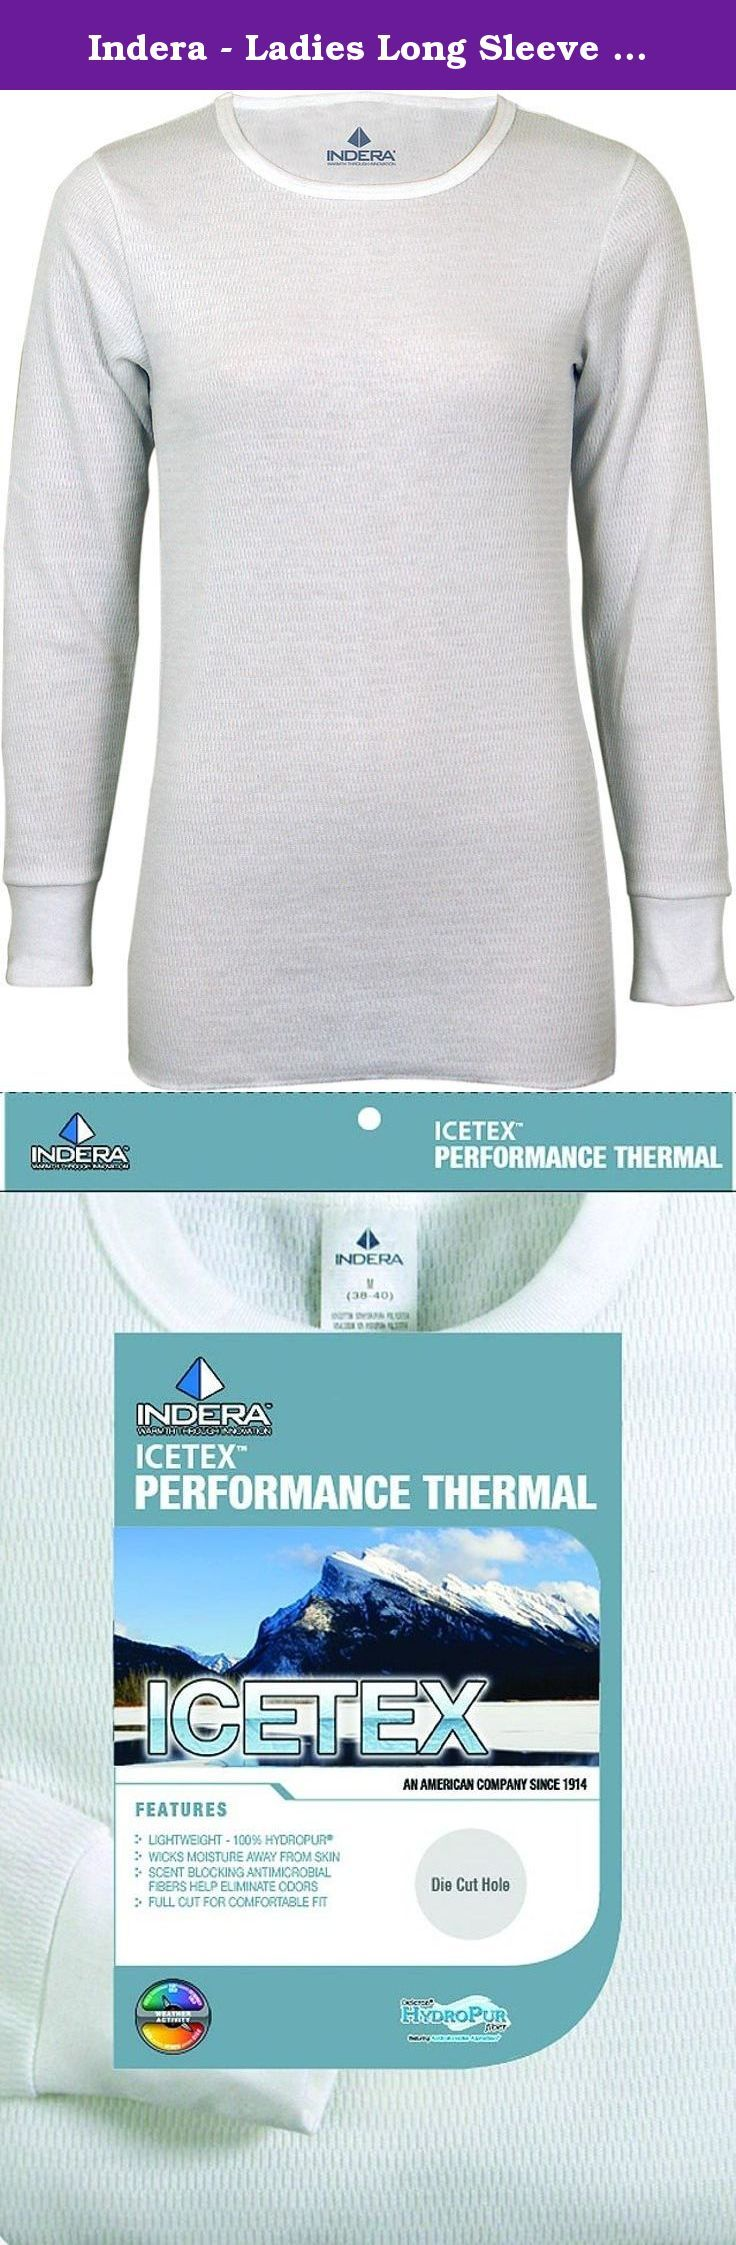 Indera - Ladies Long Sleeve Icetex Dual Face Fleeced Heavy Weight Thermal Top 287LS, White 34171-Medium. Ladies try this LS Icetex Dual Face Fleeced Heavy Weight Thermal (287), It is fleeced ICETEX inside and a combed cotton outside with scent blocking fibers to helps reduce odor, Heavy weight and wicks moisture, For extreme cold weather and high activity, Top size Small = 34/36 Medium = 38/40 Large = 42/44 Extra Large = 46/48 pant size Small = 30/32 Medium = 34/36 Large = 38/40 Extra…